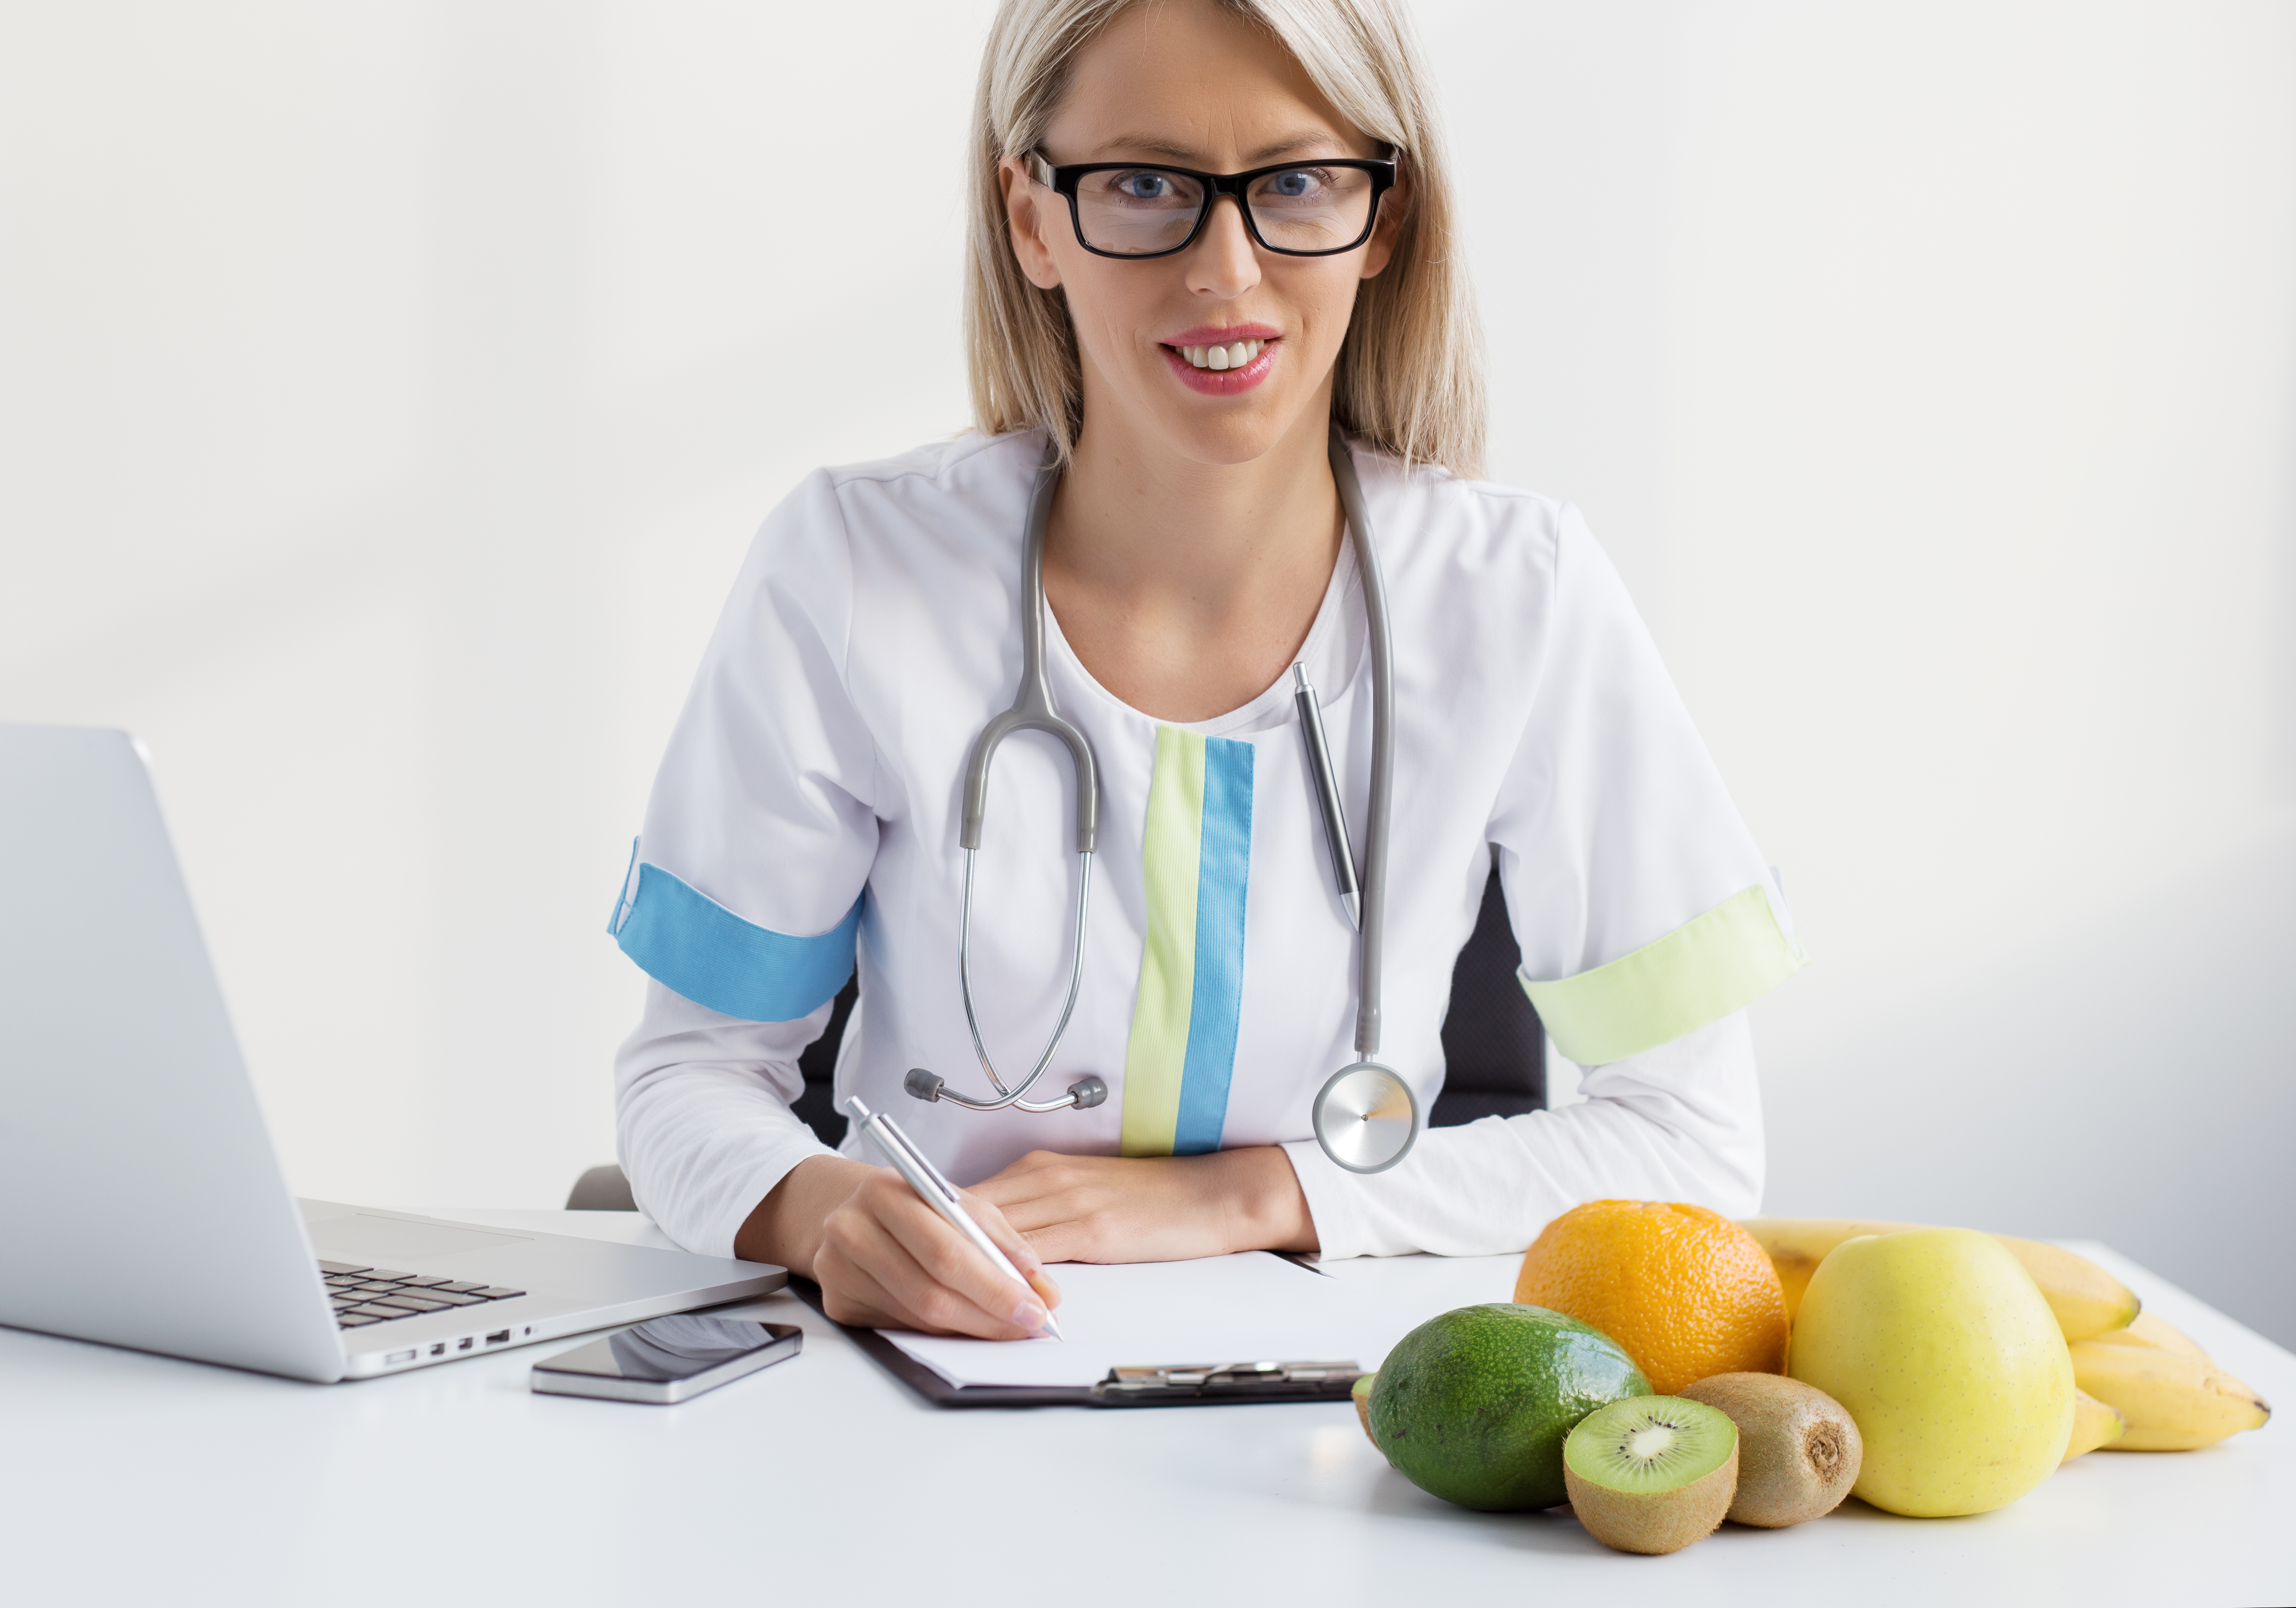 dr and plate of healthy food